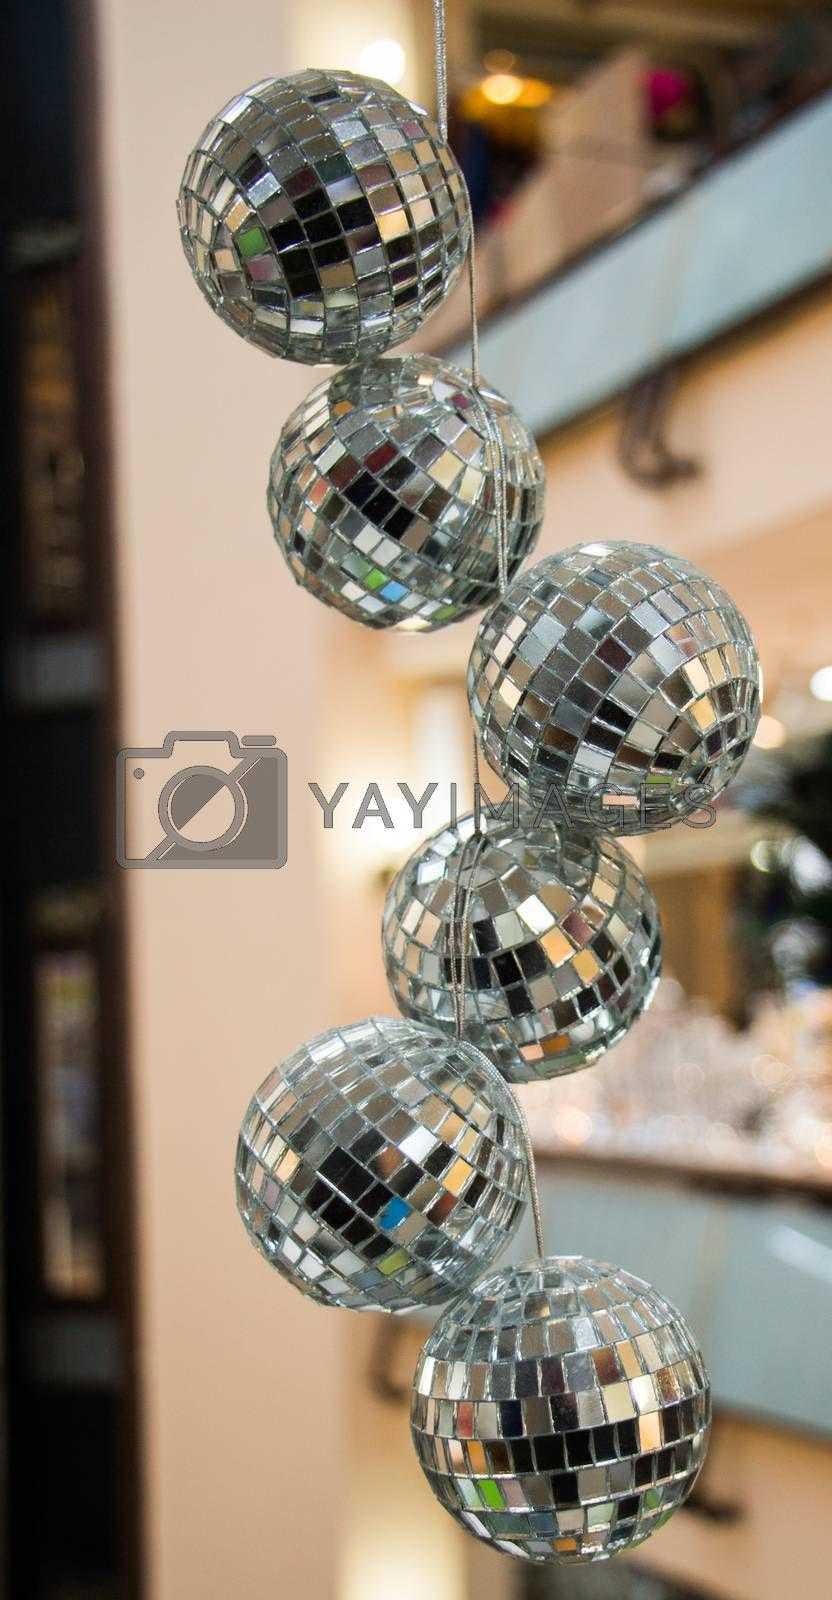 disco balls with mirror pieces for dancing in a disco club